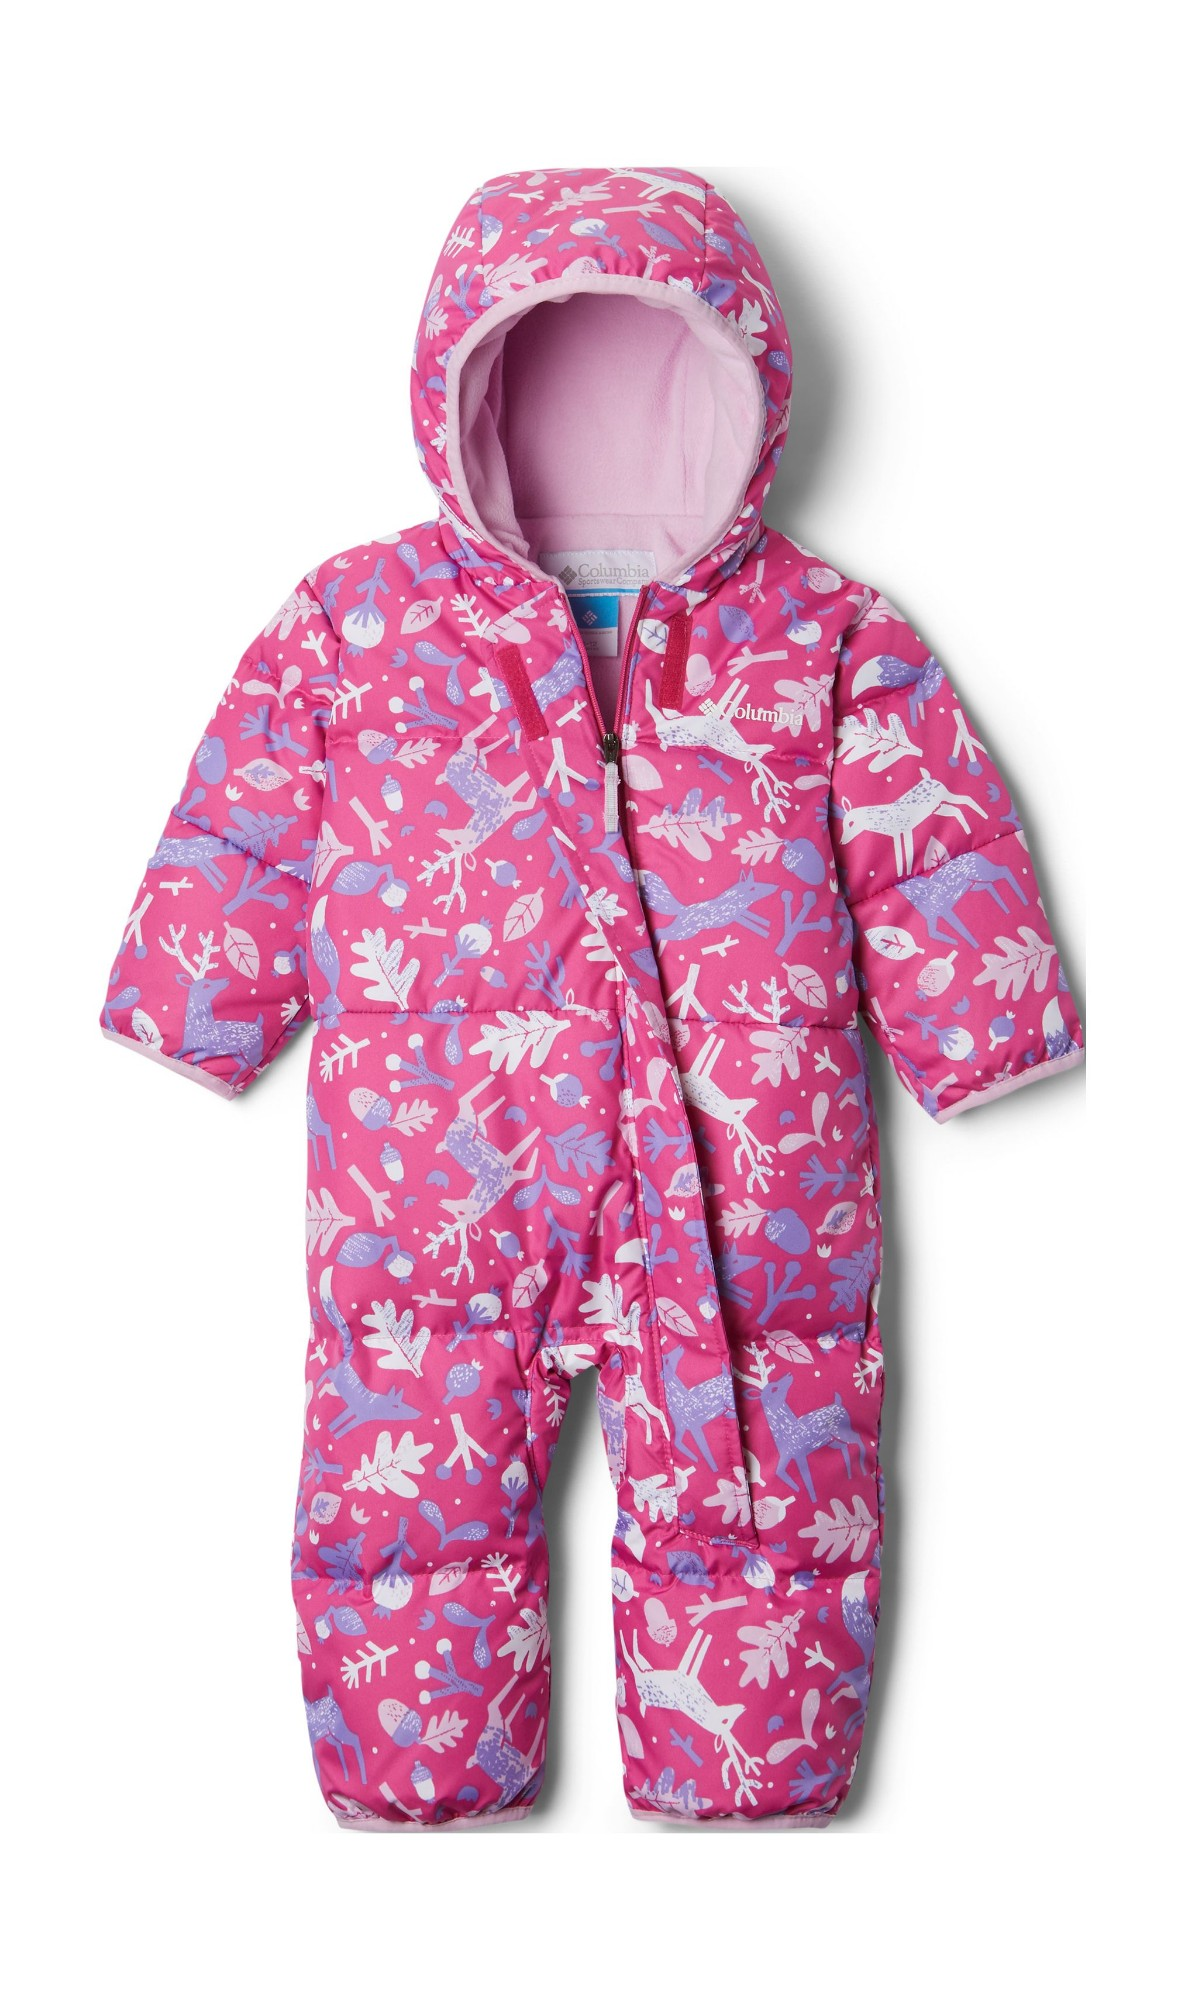 Columbia Snuggly Bunny Bunting Pink Ice Reindeer/Pink Clover 86